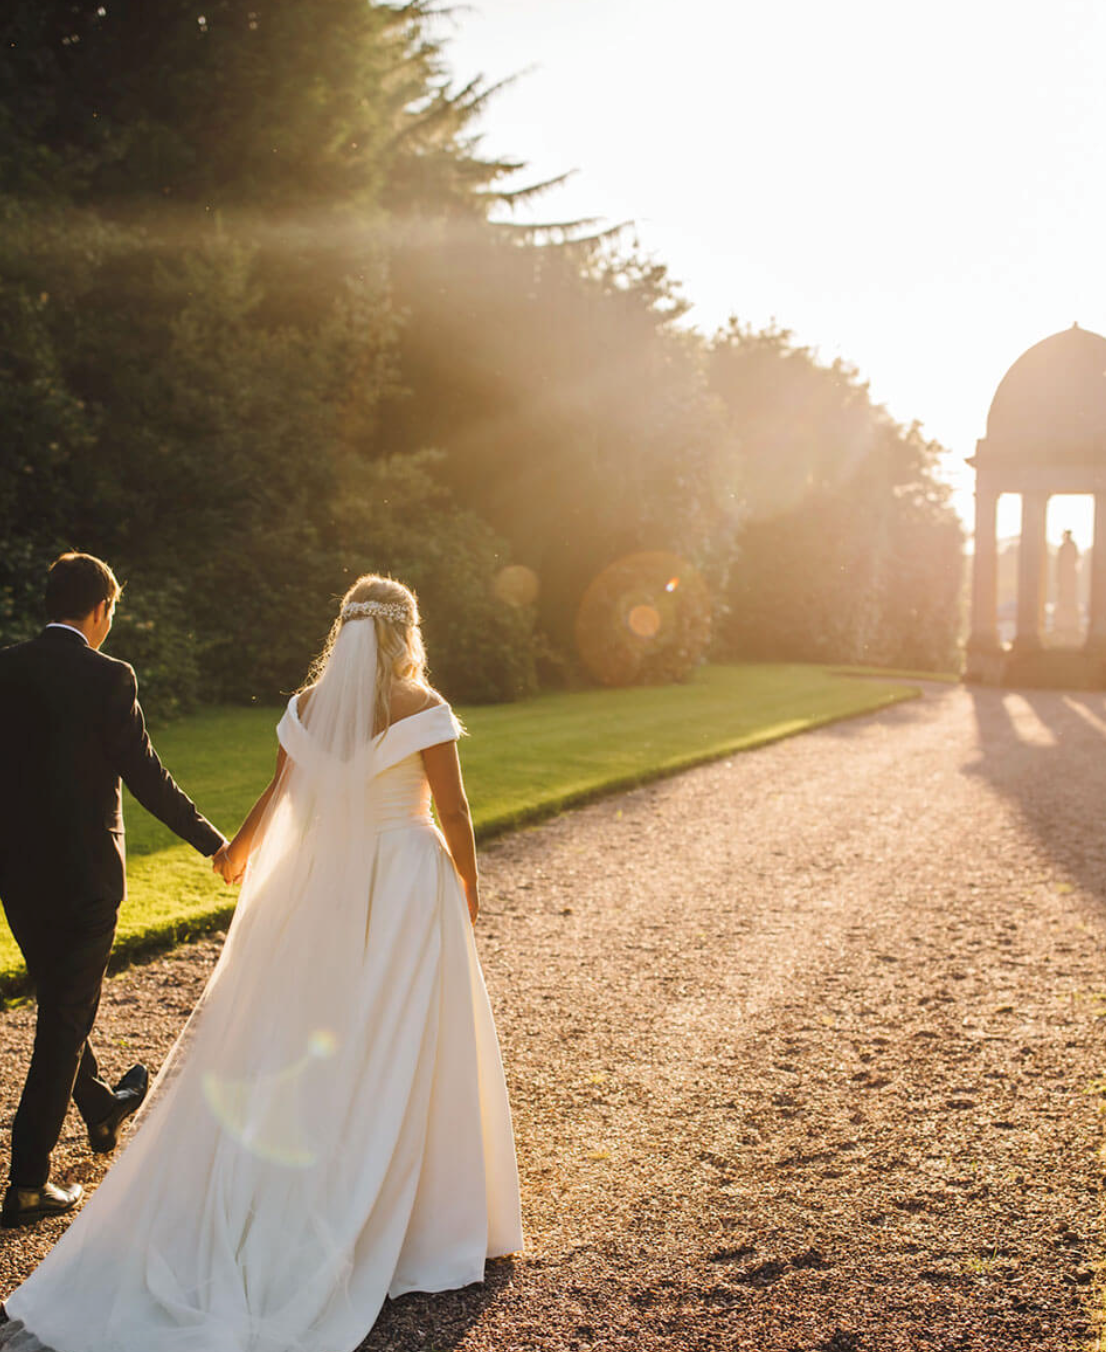 Ask the Experts: How to Plan For a Perfect Countryside Wedding